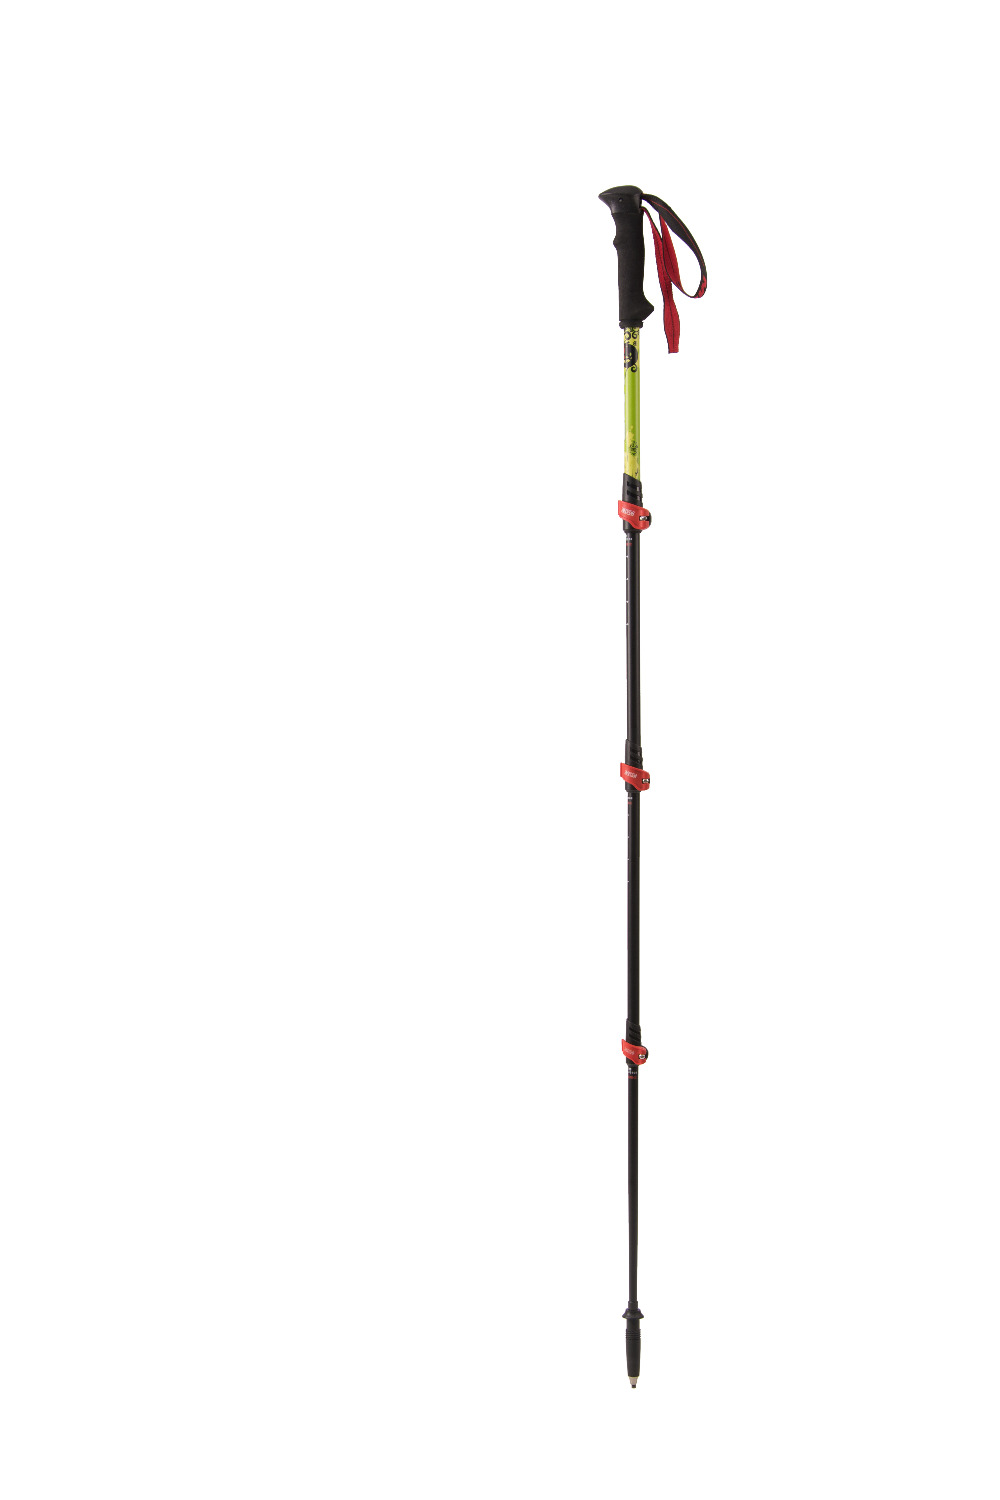 MBC M124Q Alpenstock Carbon Ultralight Outdoor Trekking  Equipment Fast and Robust Security Cane foldable ultralight aluminum alpenstock for mountaineering